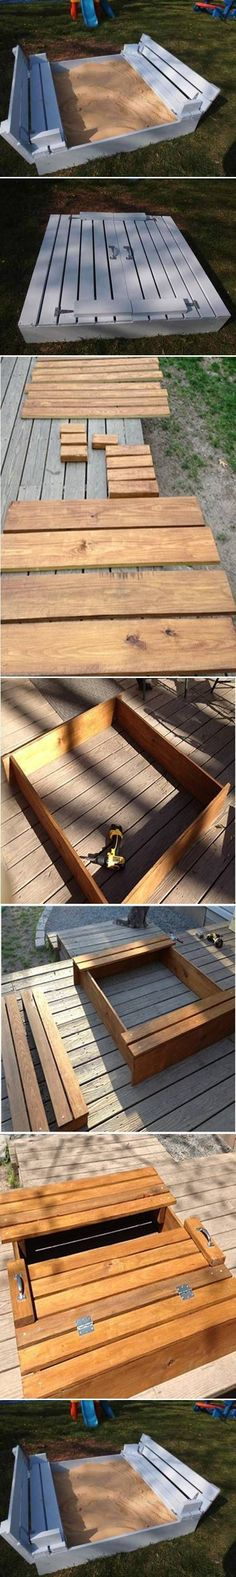 DIY Sandbox...that's pretty neat